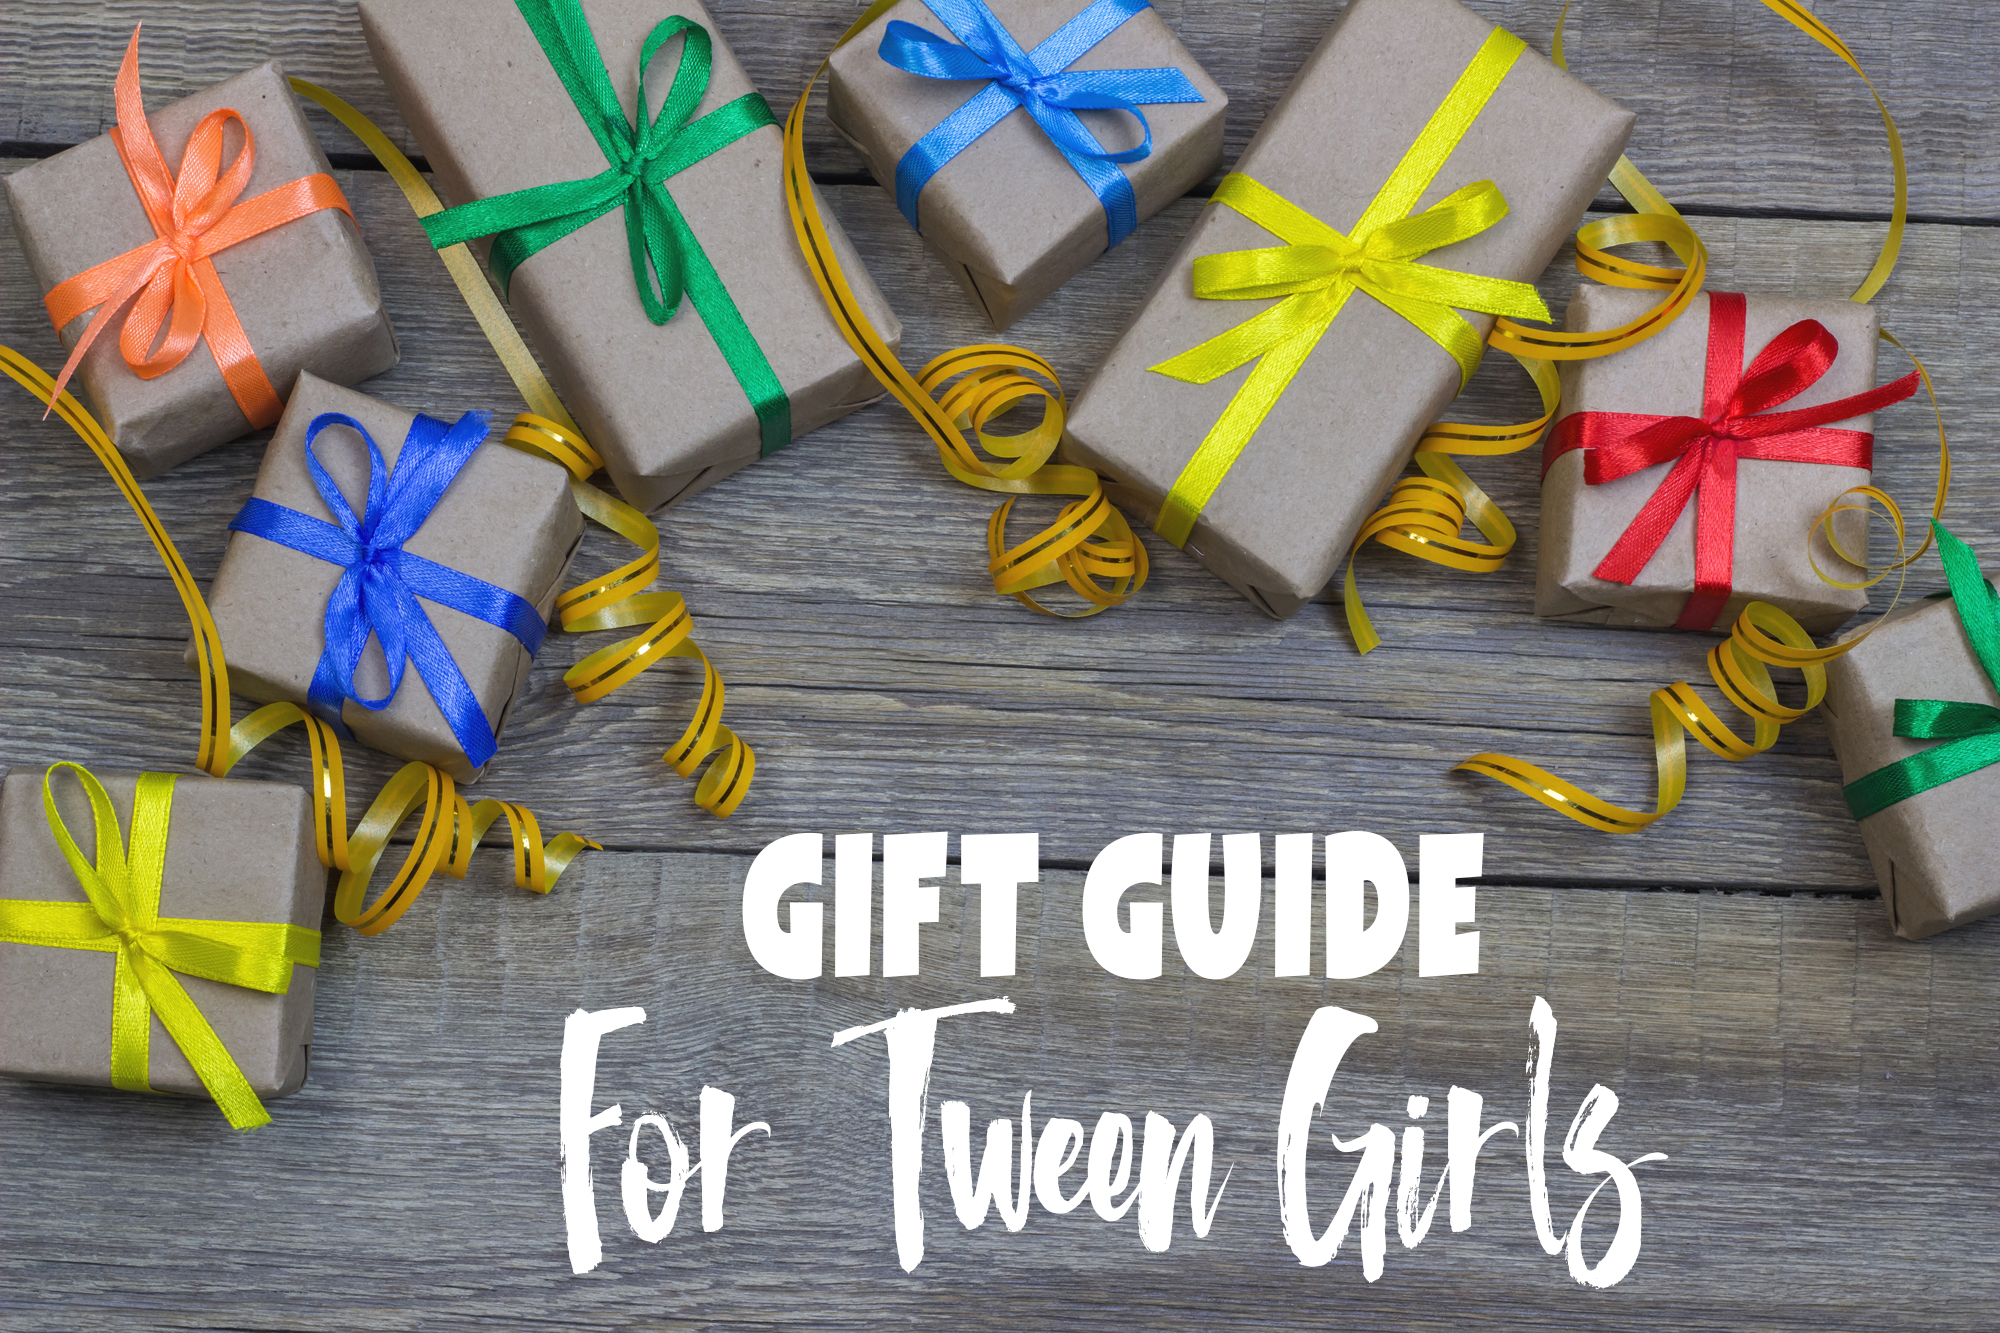 acaa2dcdc Gift Ideas For Tween Girls They Will Love: 2019 Gift Guide | Raising ...